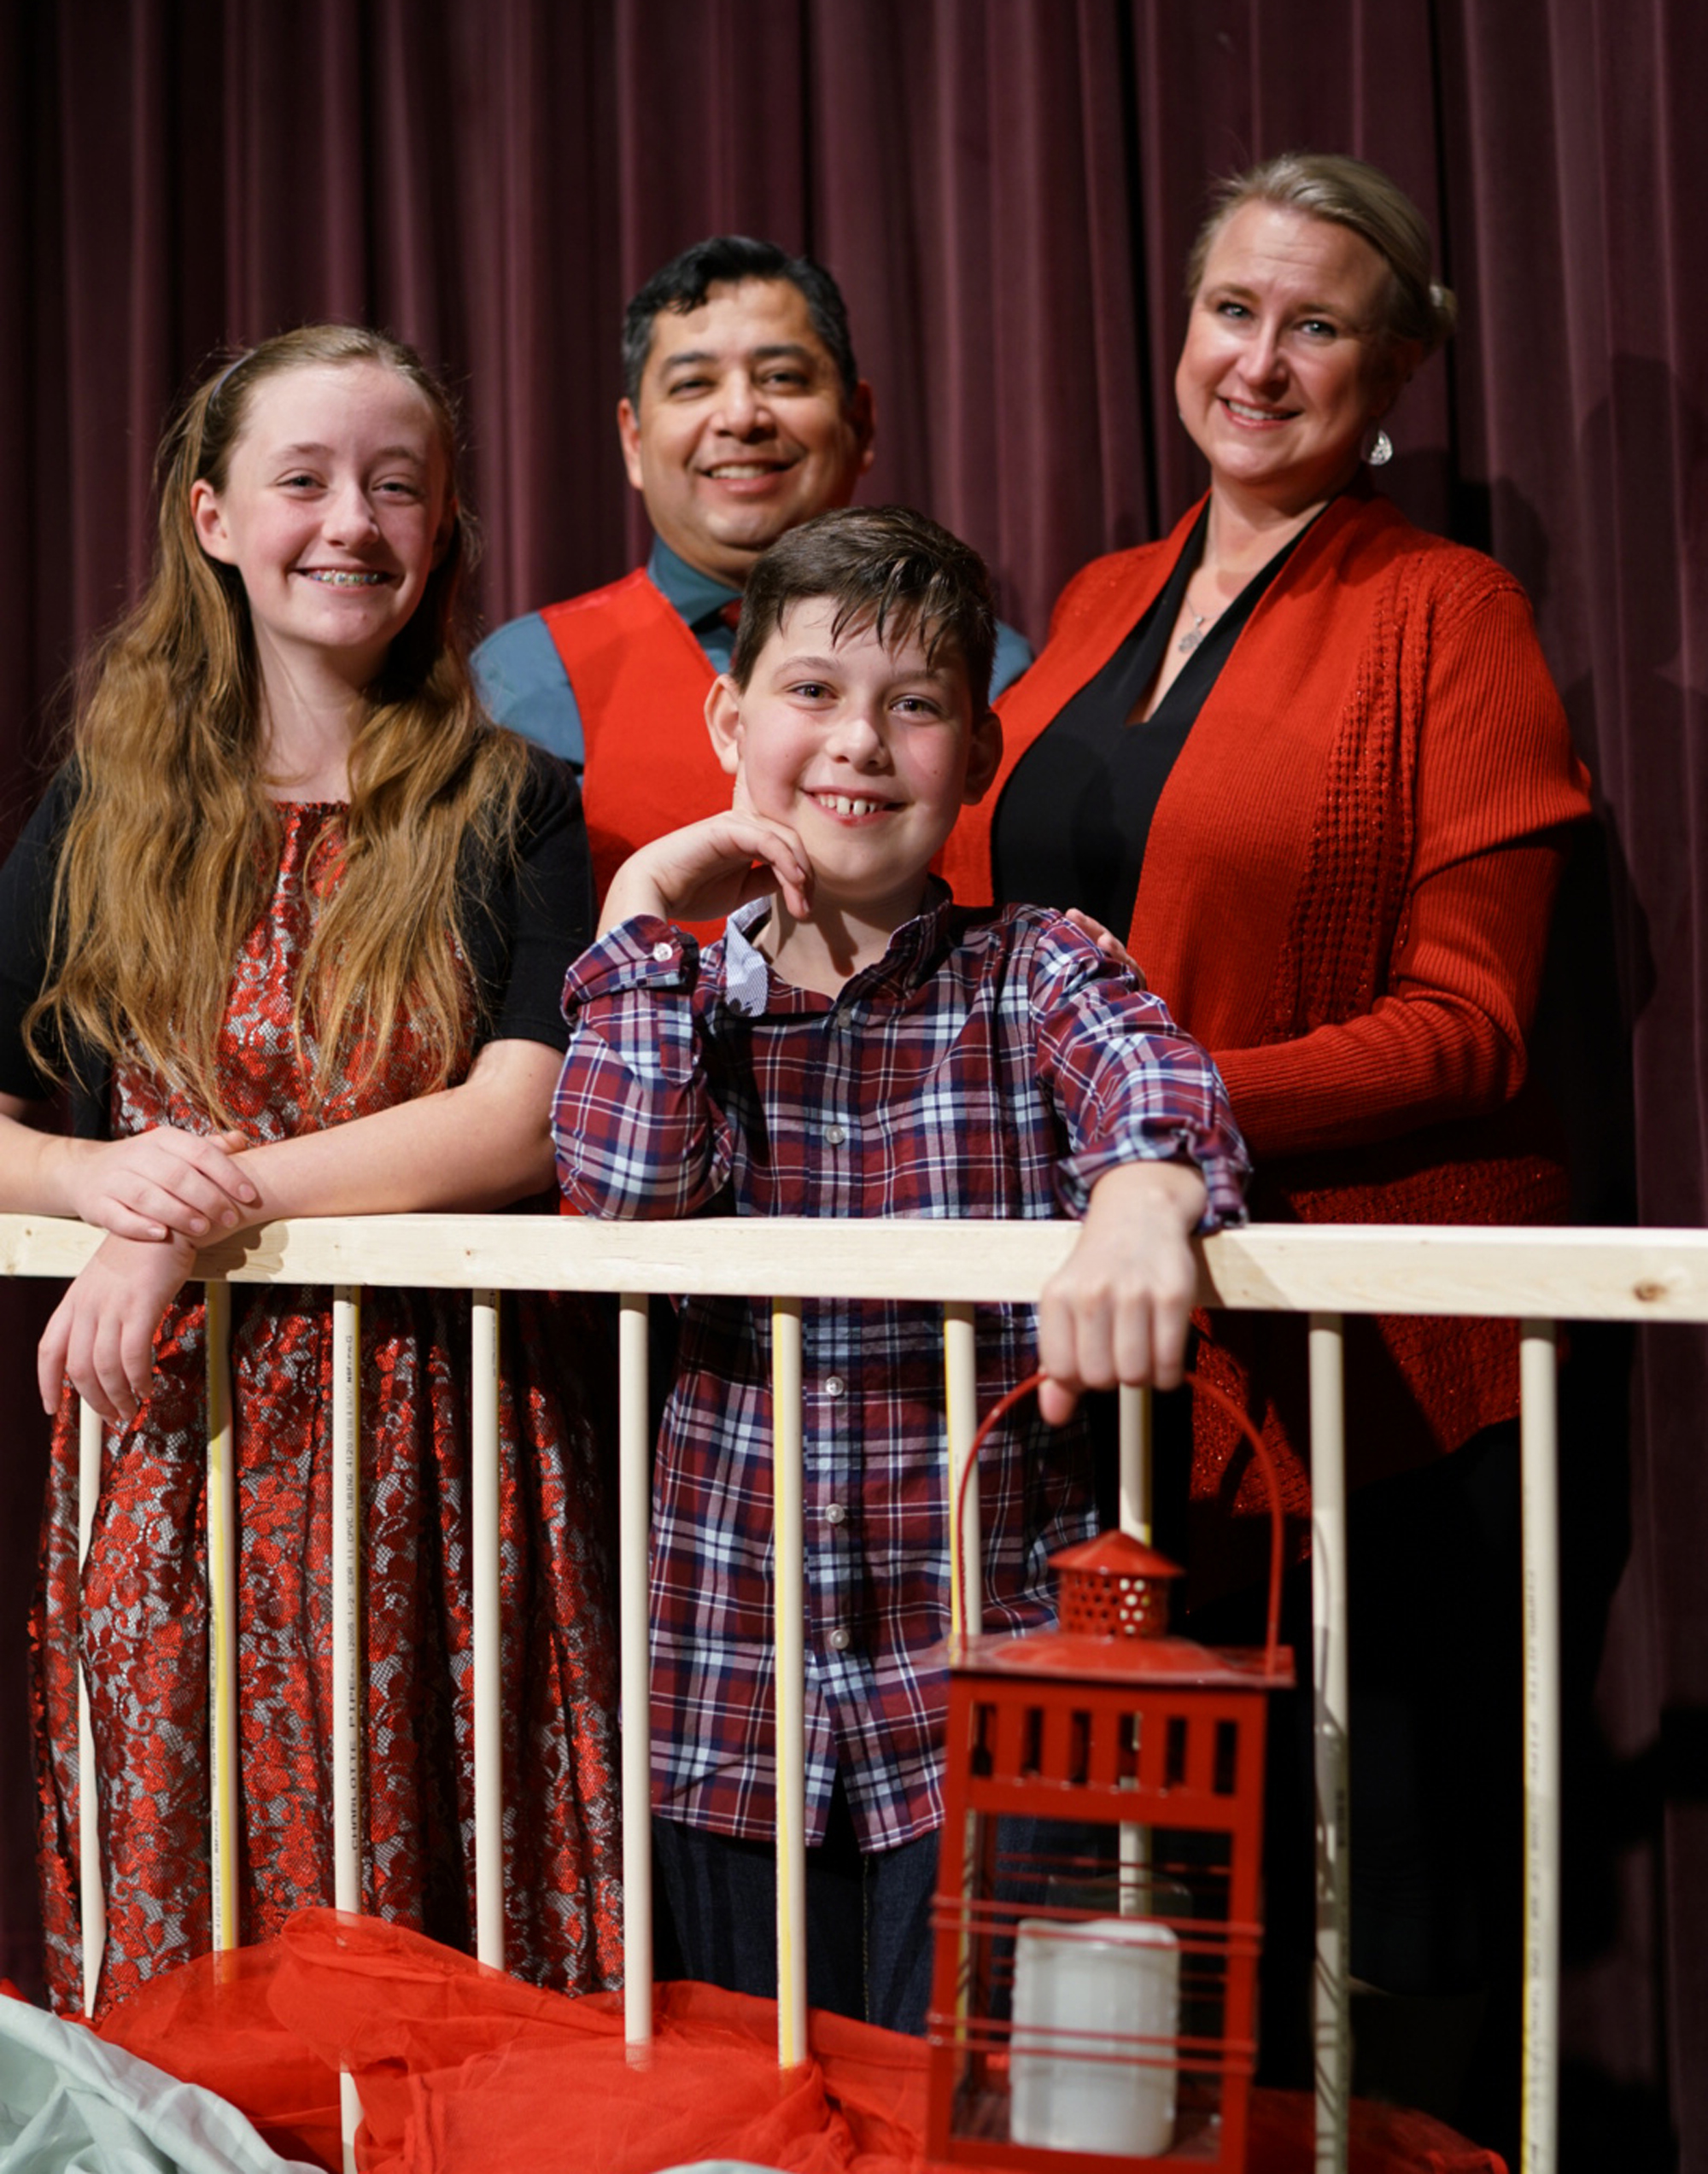 The Bradley family in the Providence Players production of The Best Christmas Pageant Ever. Photo by Rob Cuevas, Providence Players